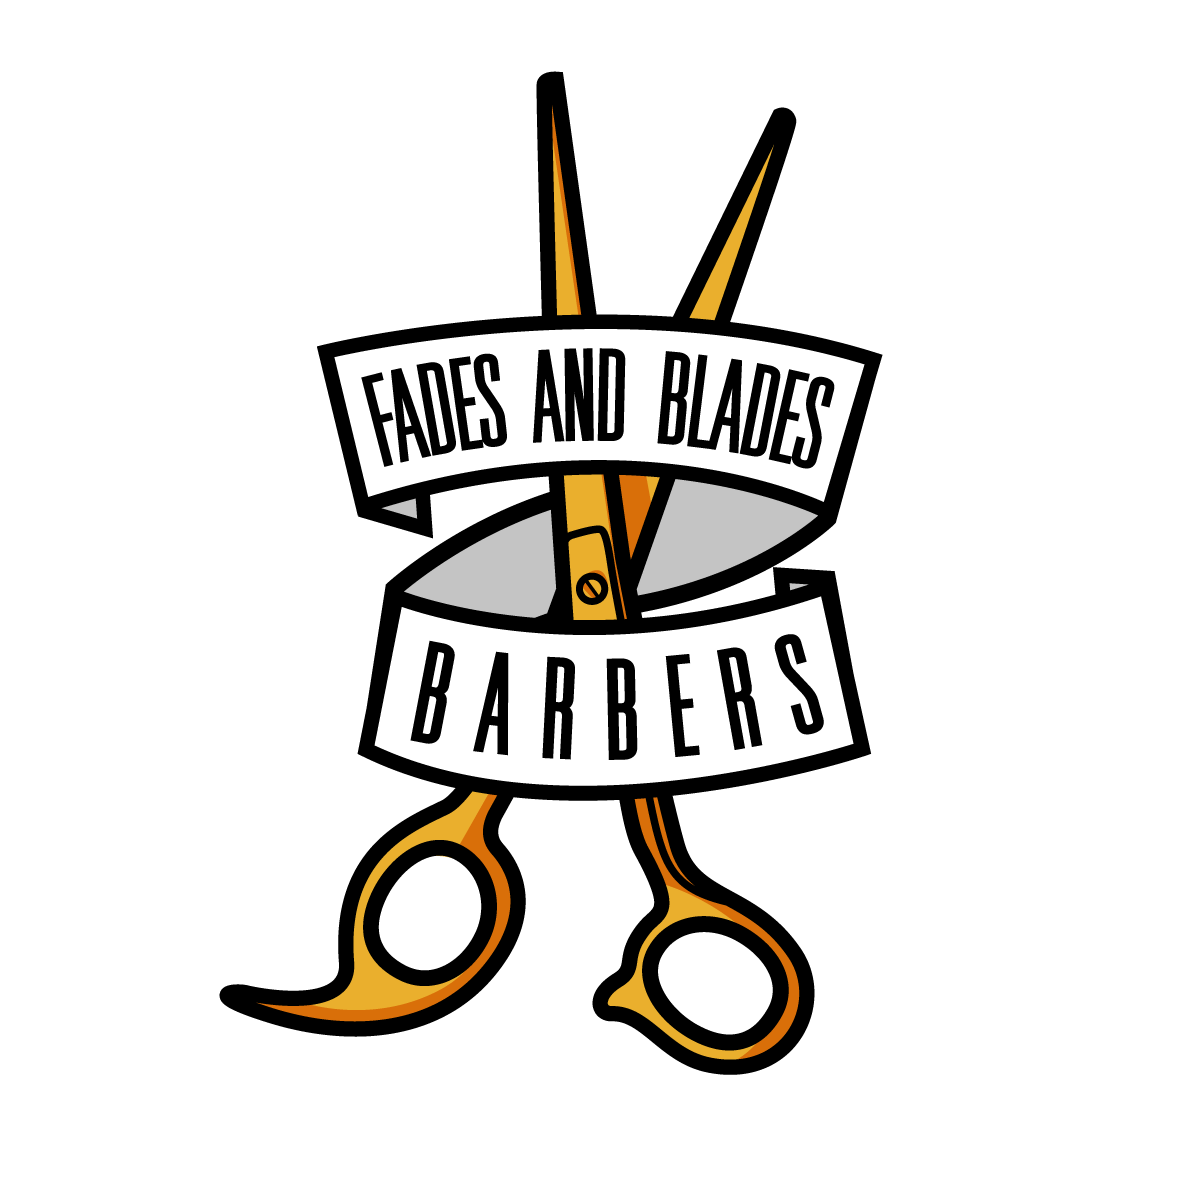 Fades and blades London